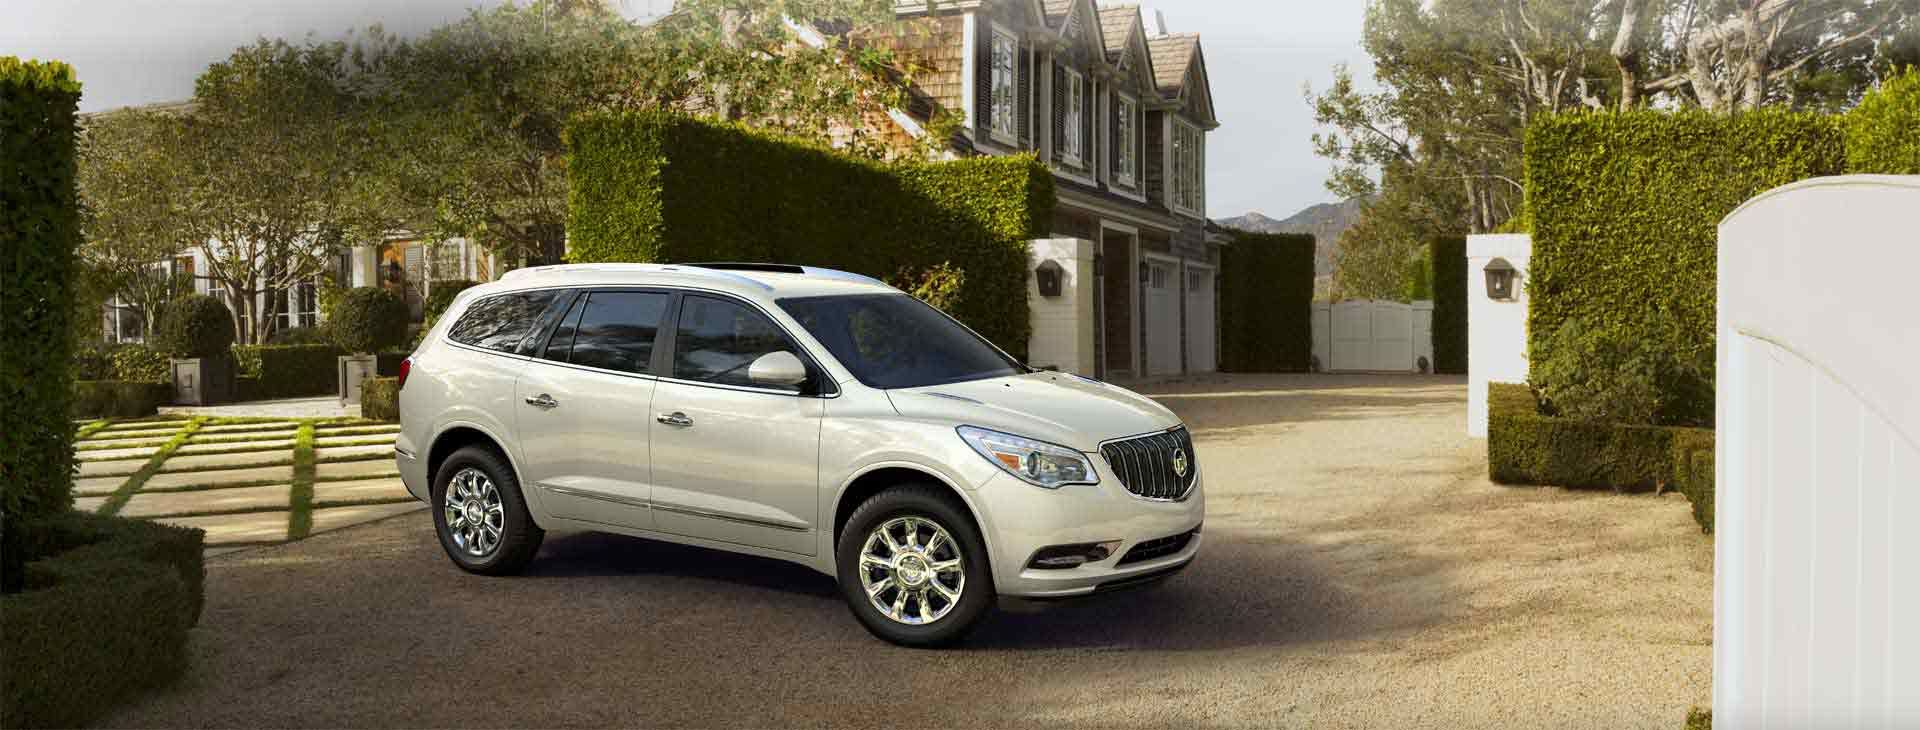 Champagne Silver Metallic Buick enclave, Luxury